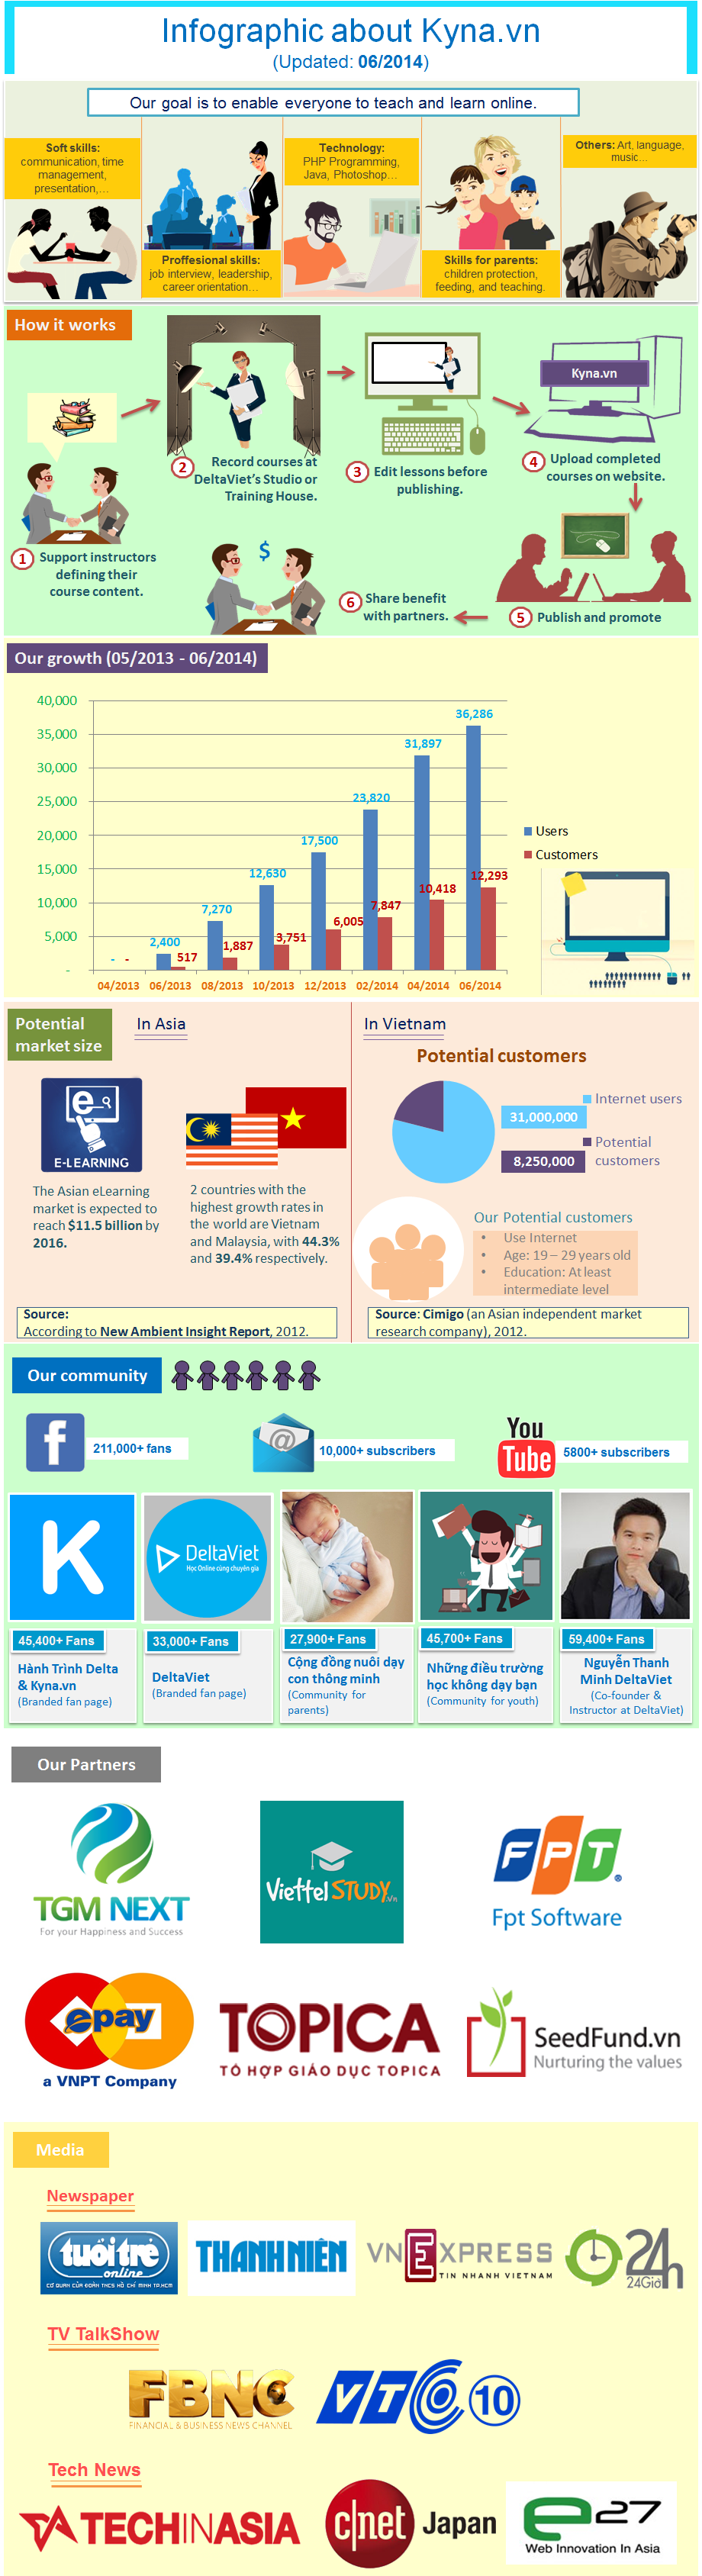 DeltaViet Infographic English version